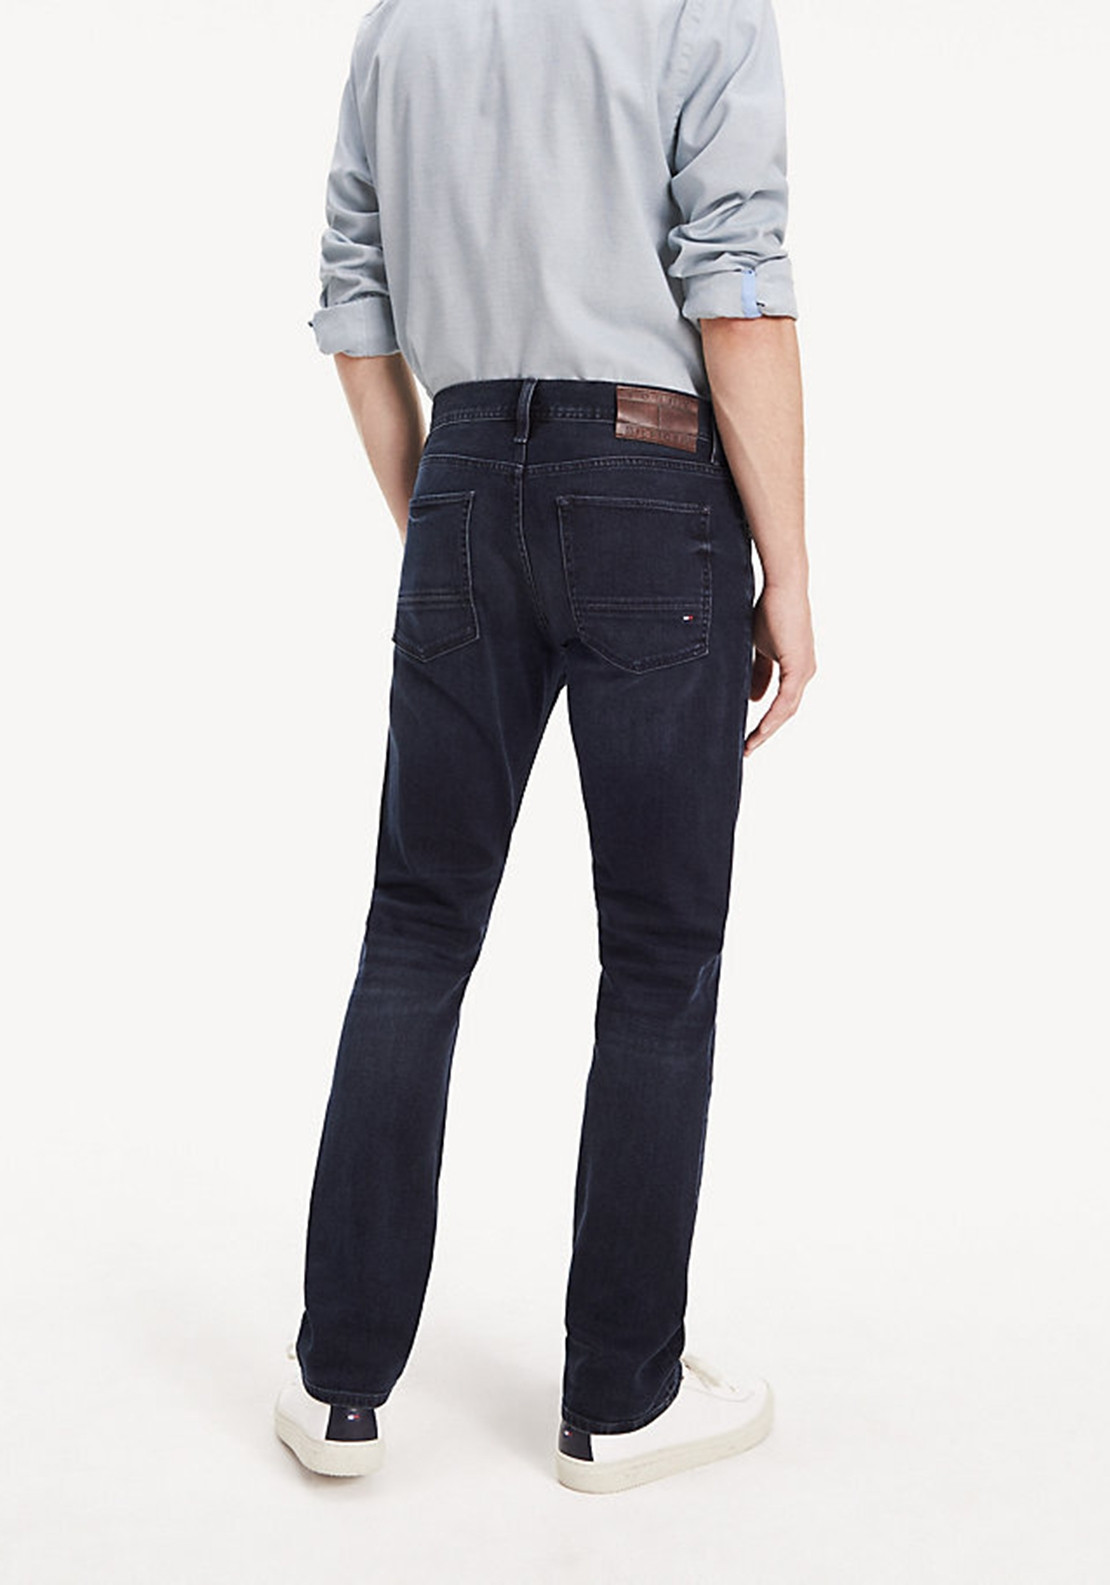 Hilfiger Denim Scanton Slim Jeans Uomo